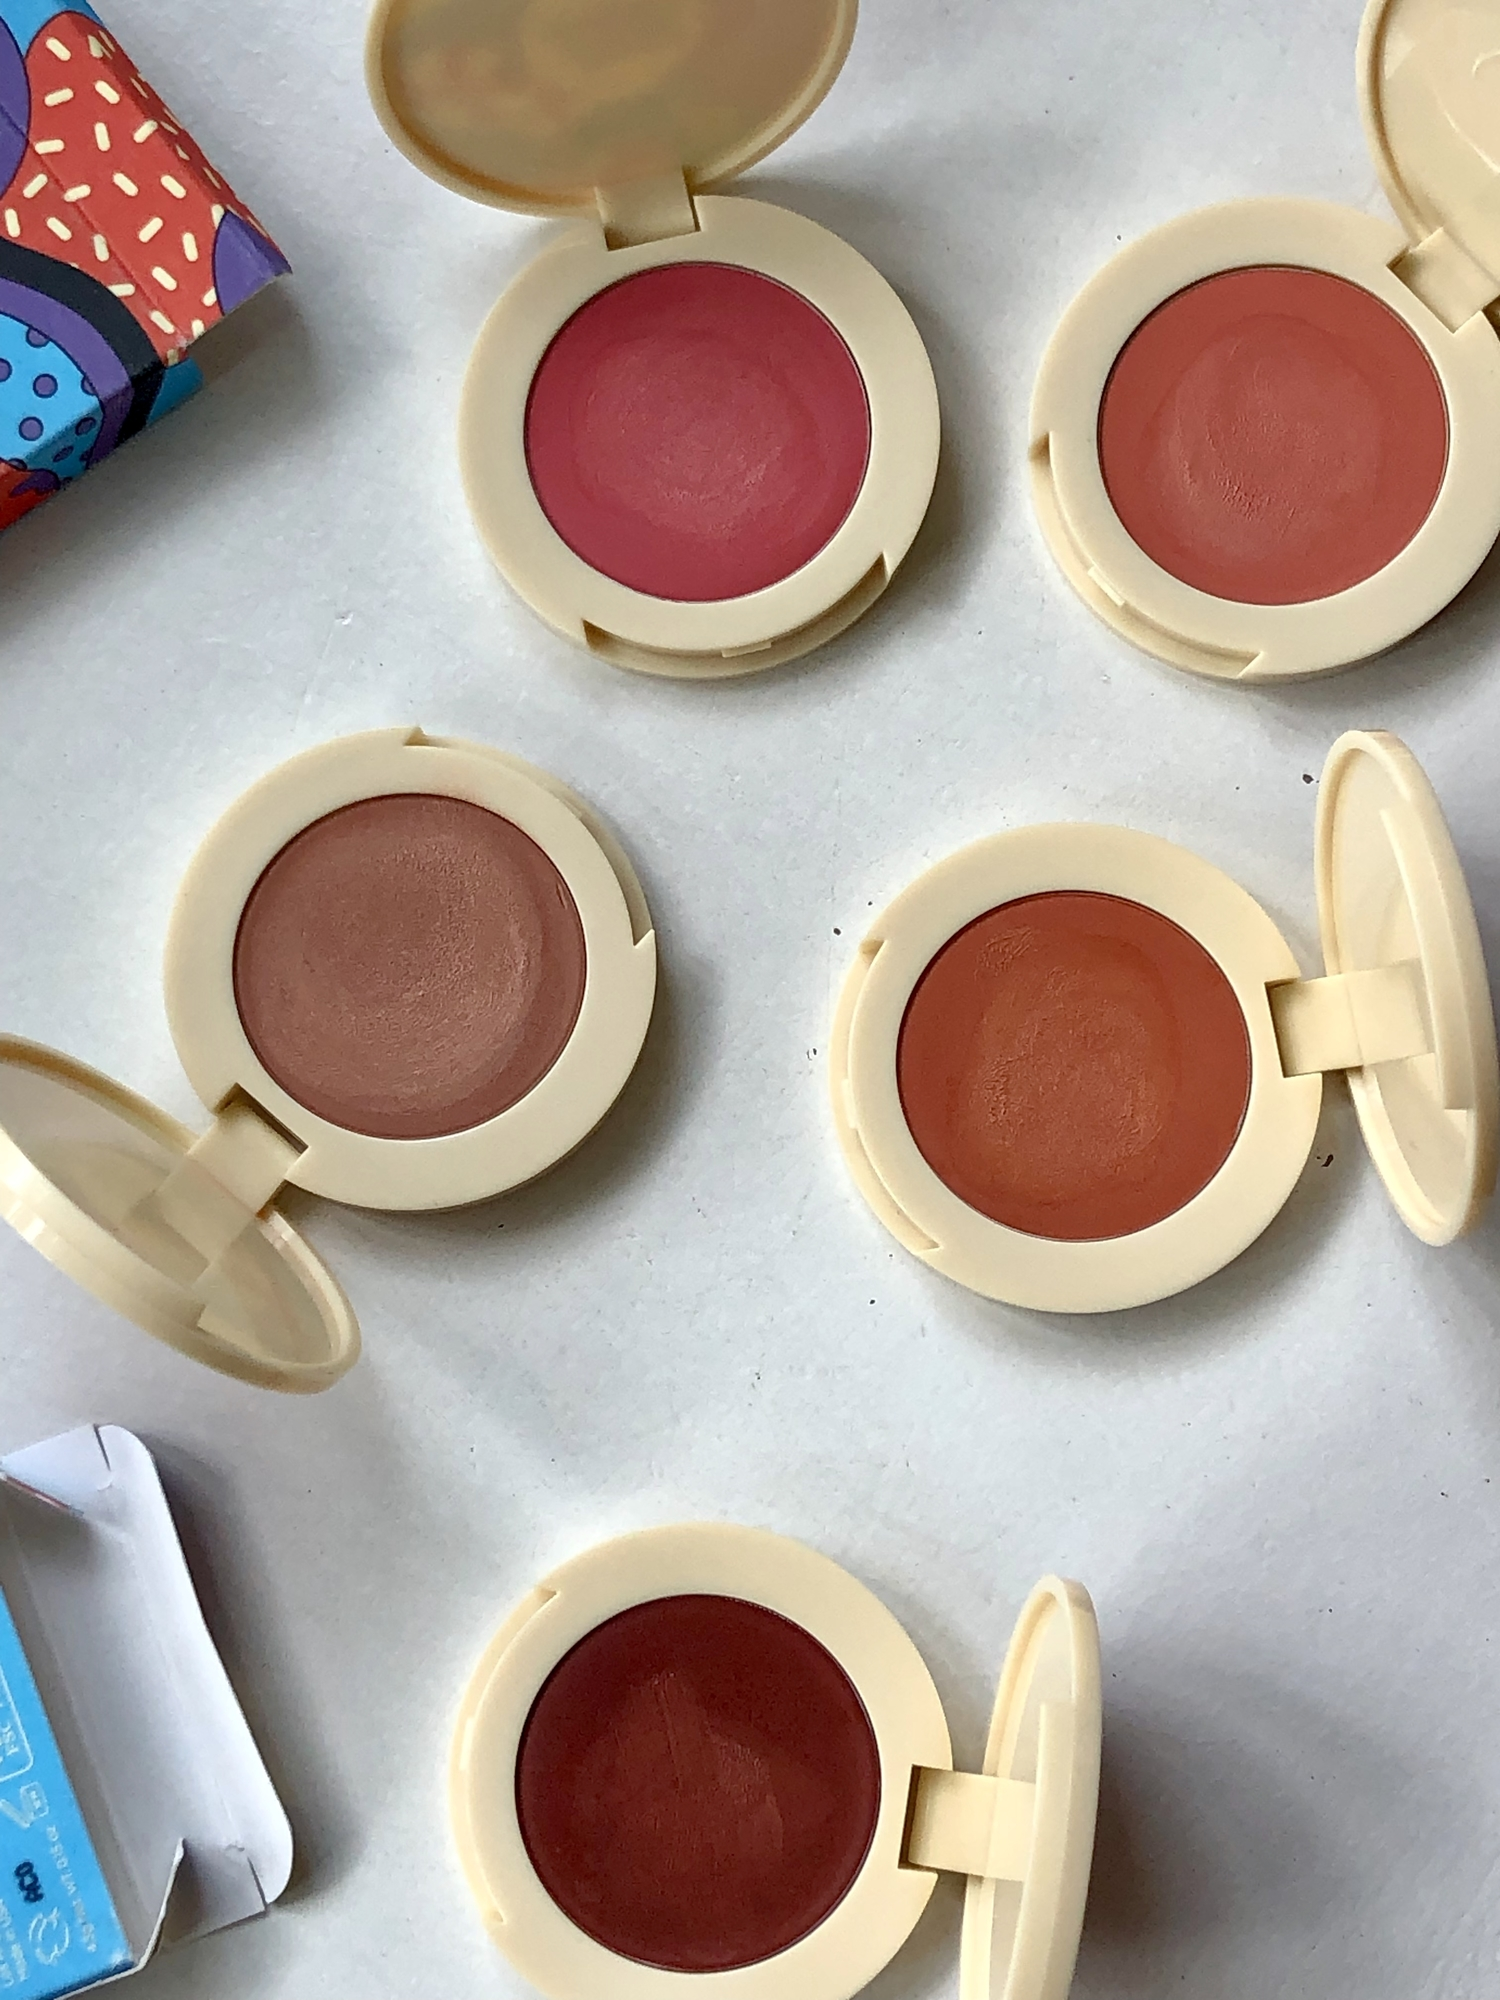 The Jamie Makeup Blightlighter collection, featuring five different shades